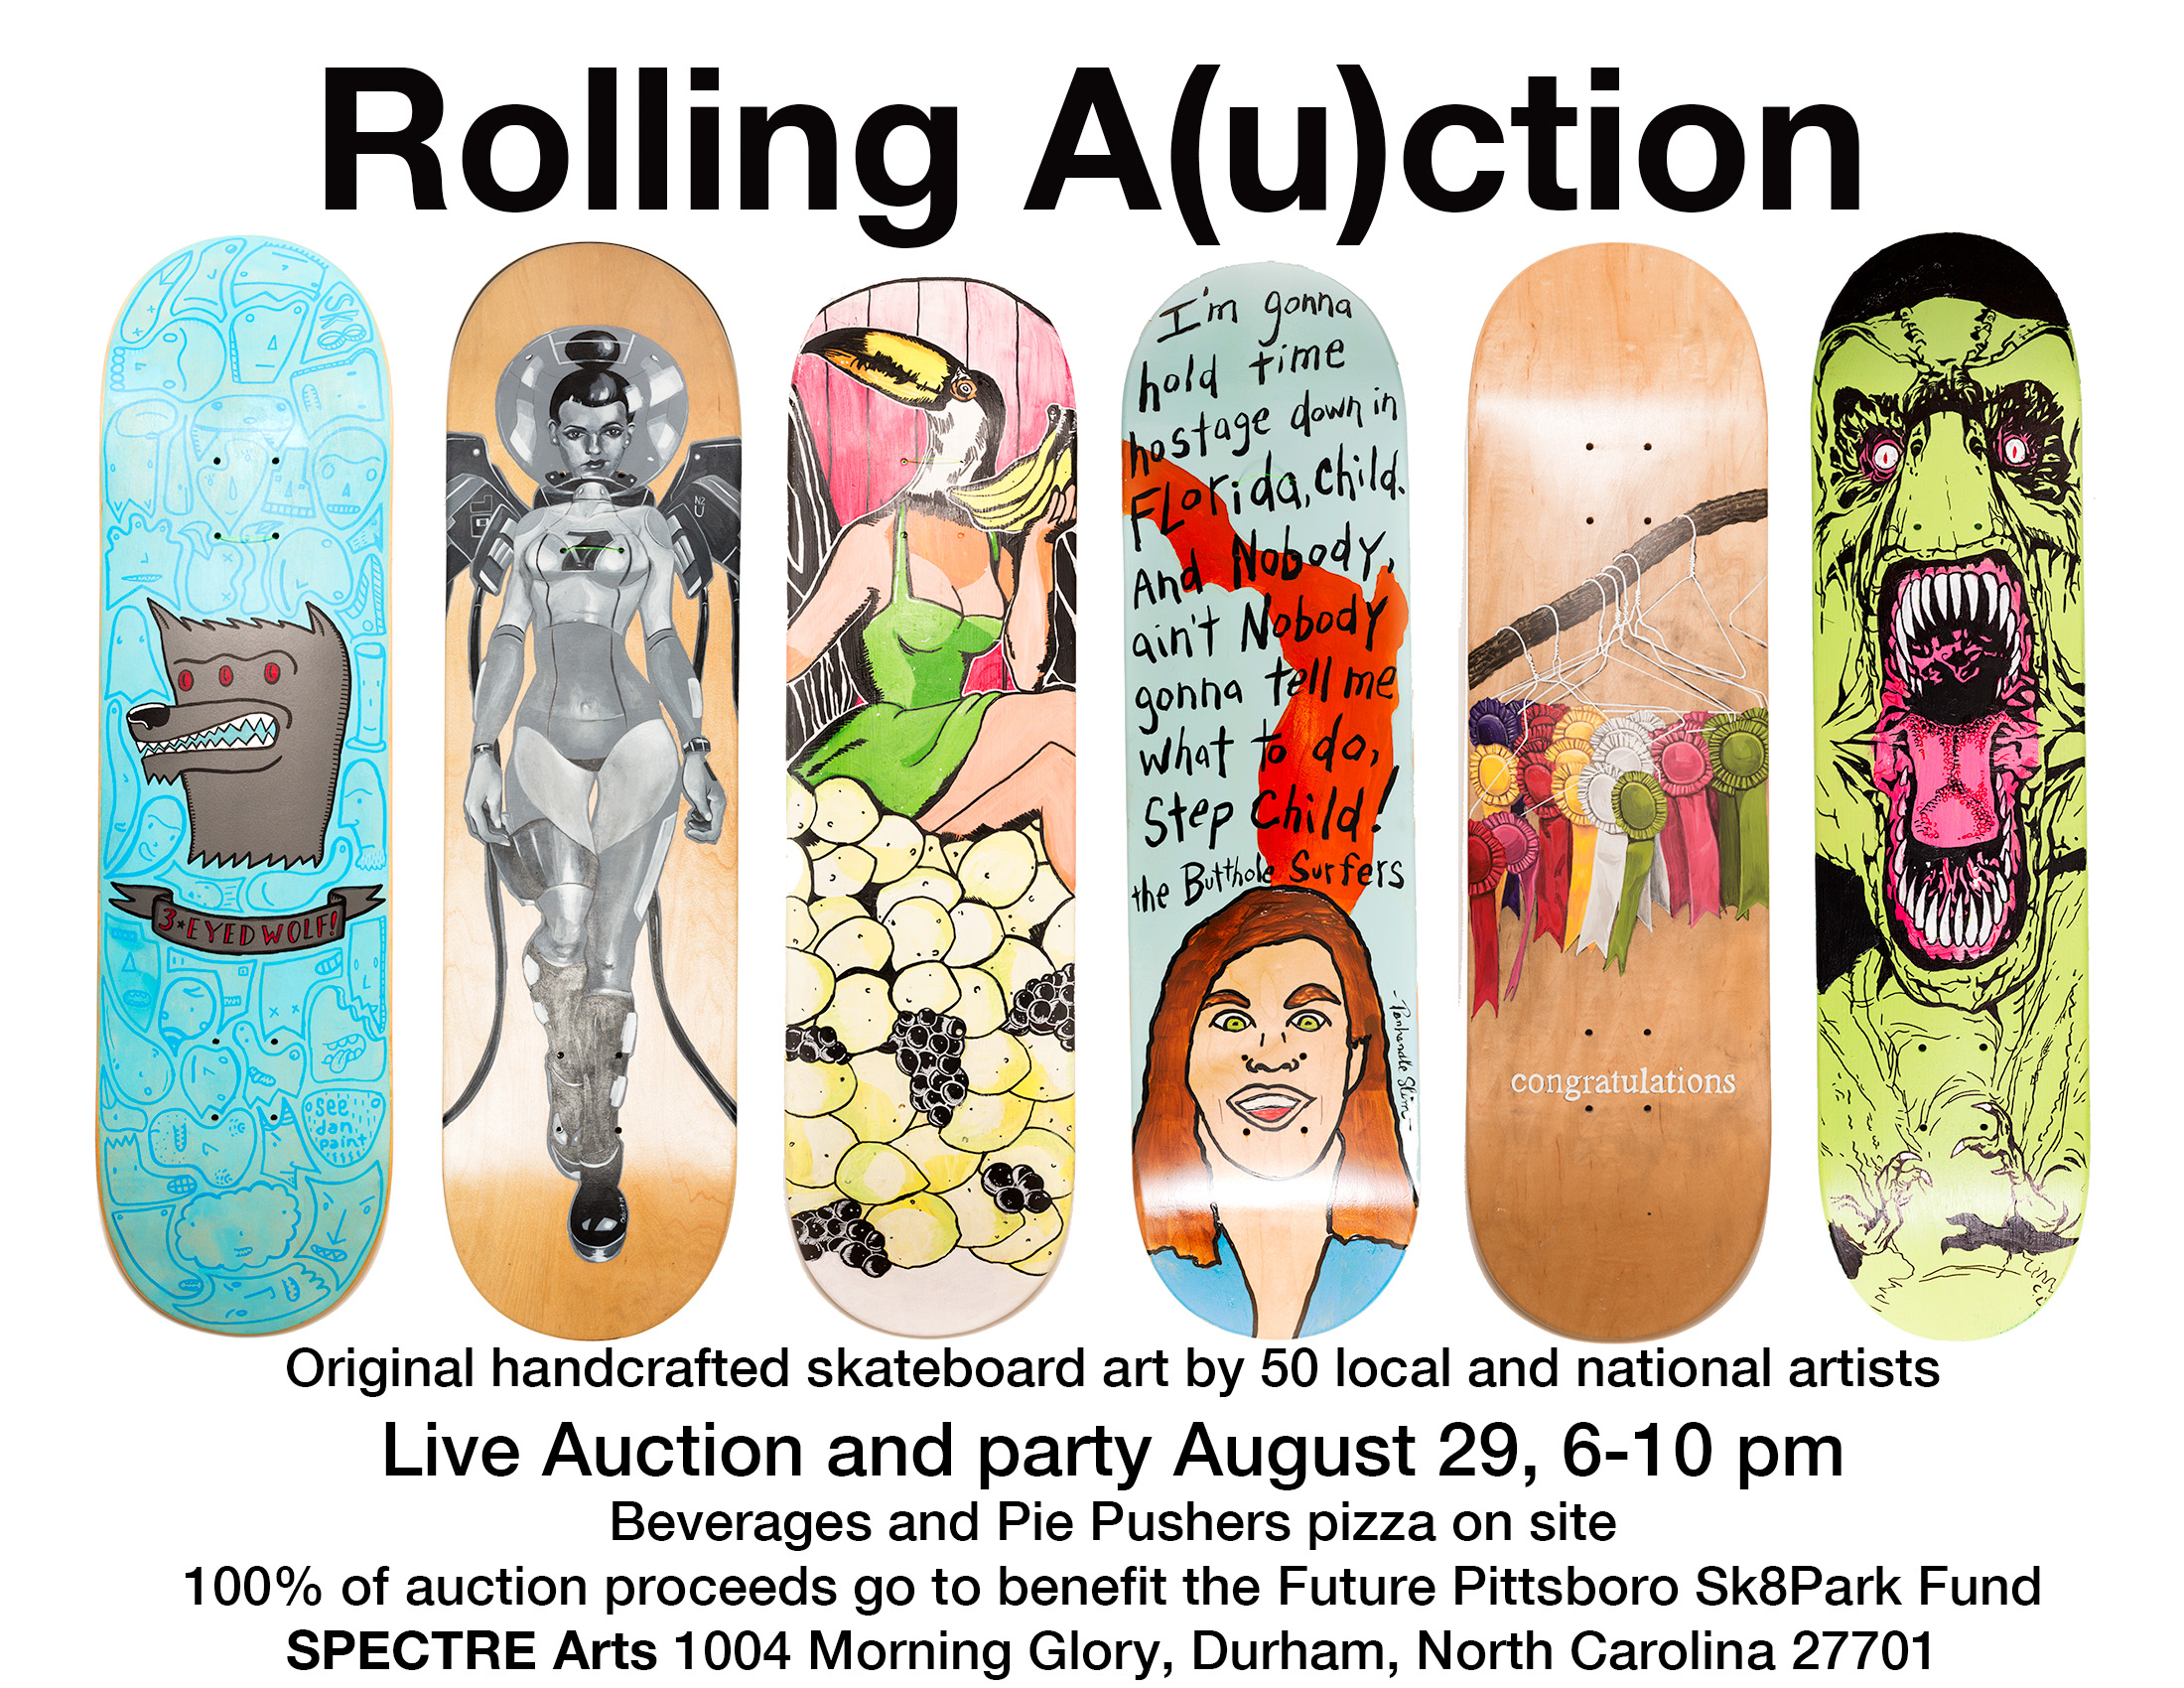 Fri, August 29, 6-10PM :: Pittsboro Skate Park, Rolling A(u)ction